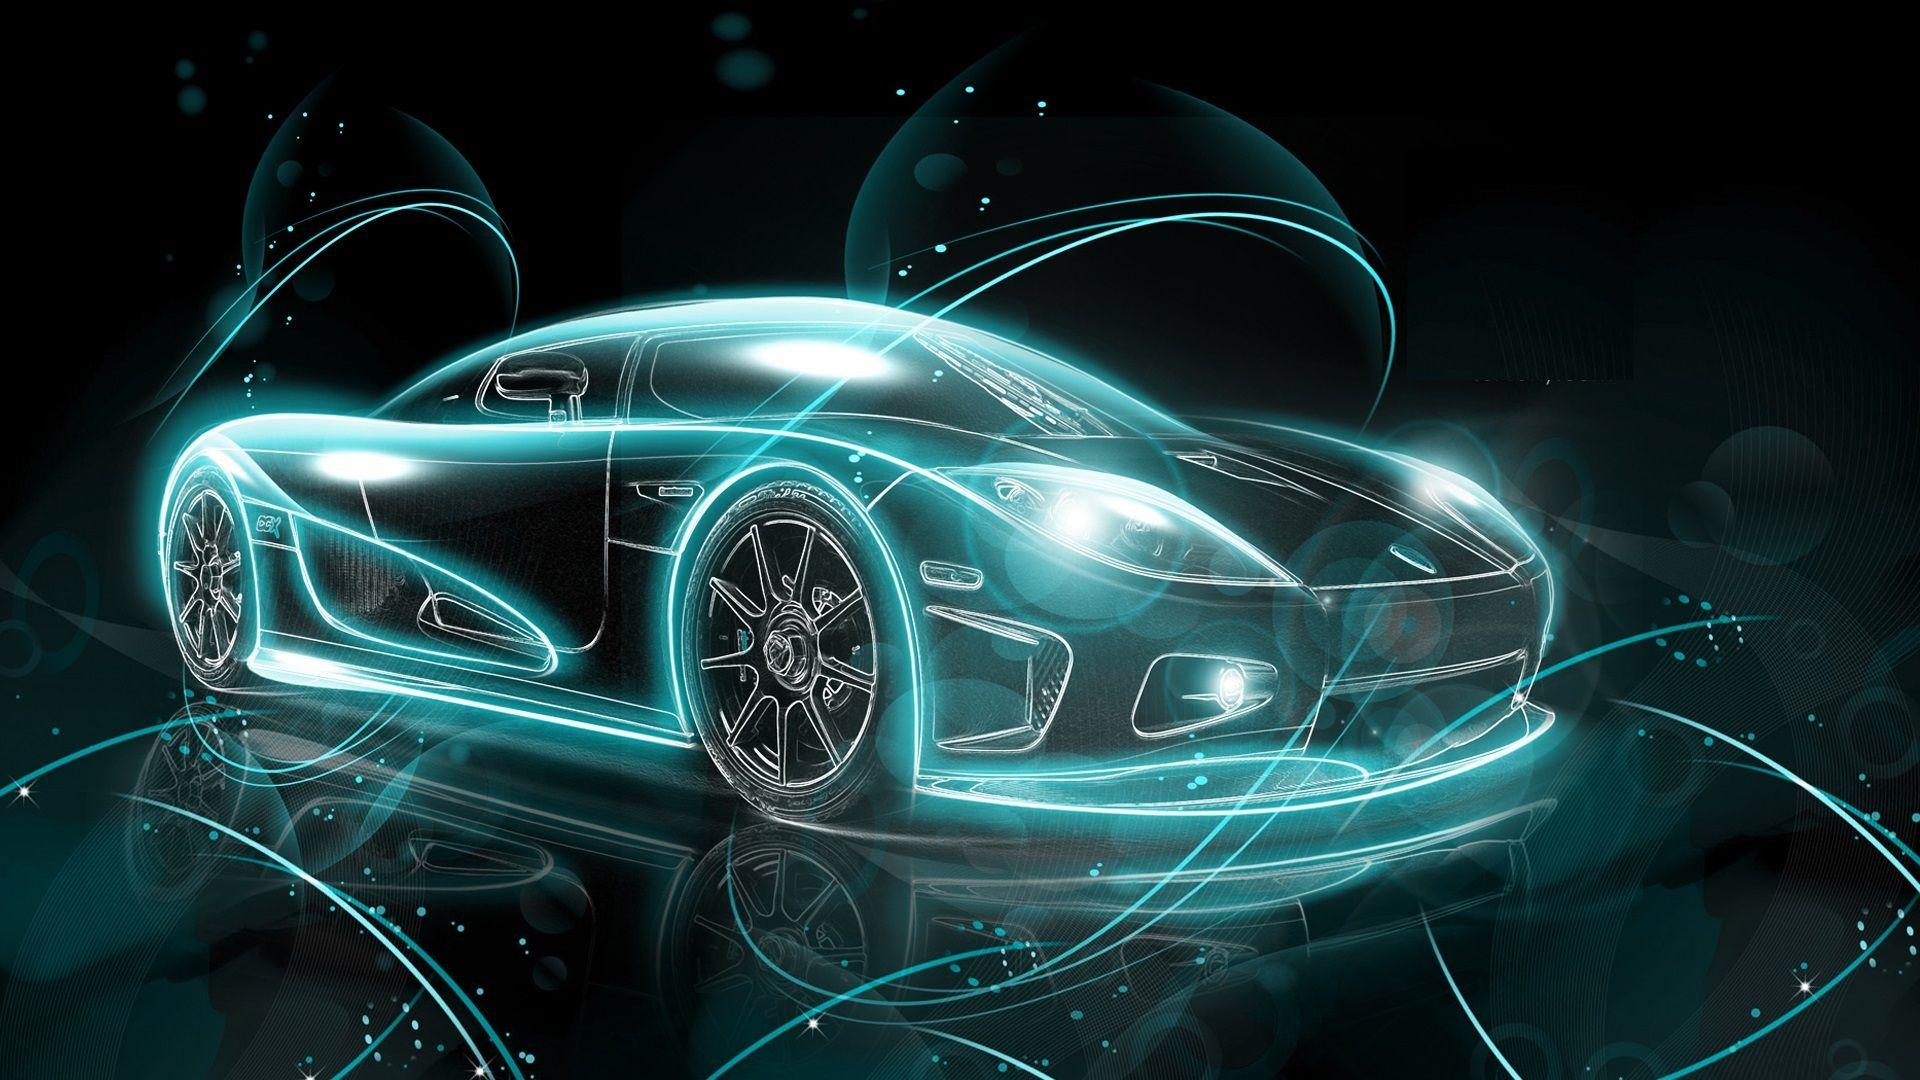 Abstract Sports Car HD Wallpaper Car Wallpapers in 1920x1080